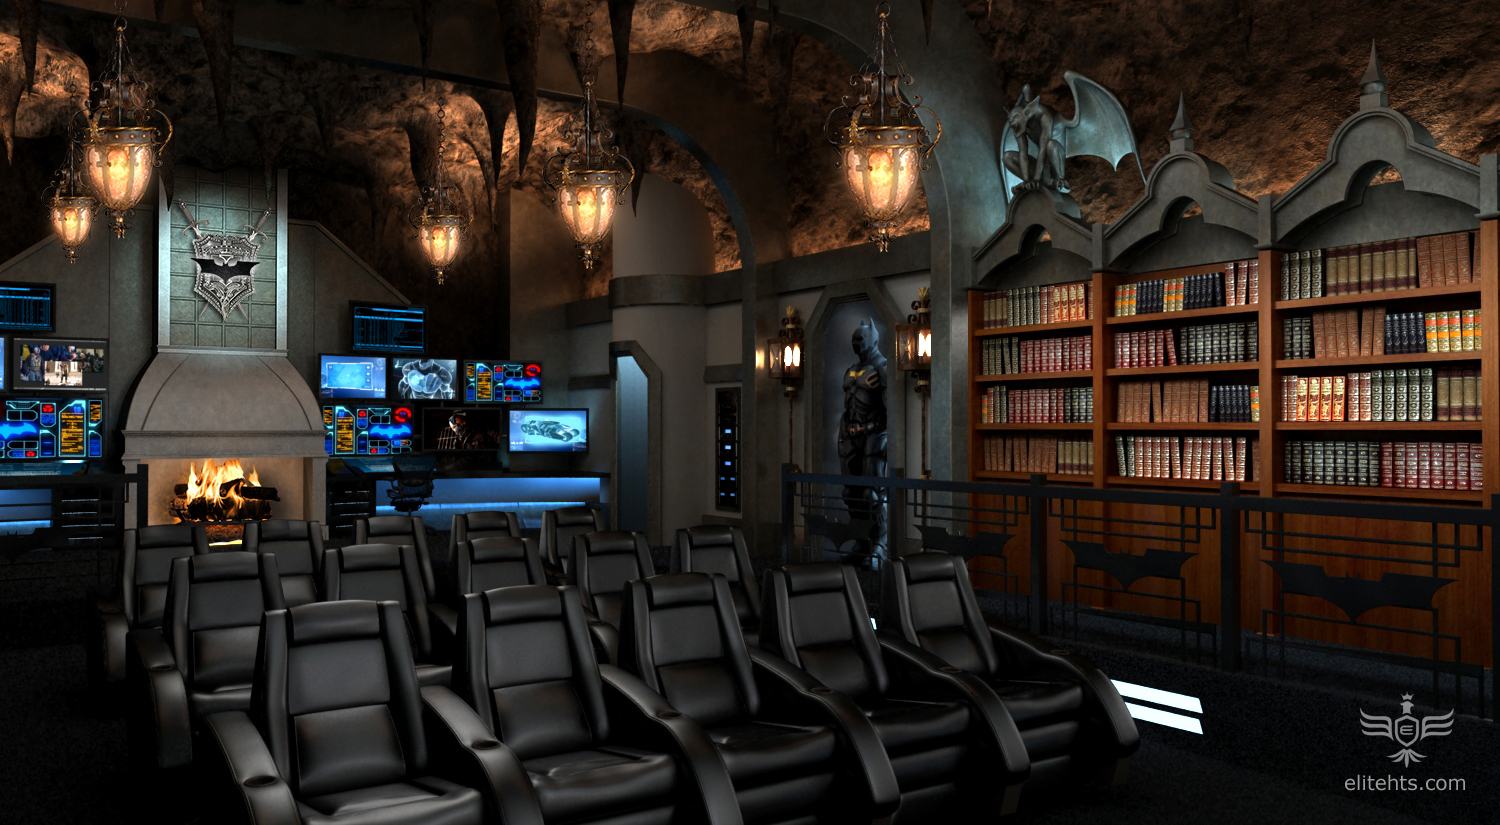 Dark Knight Theme Theater Concept